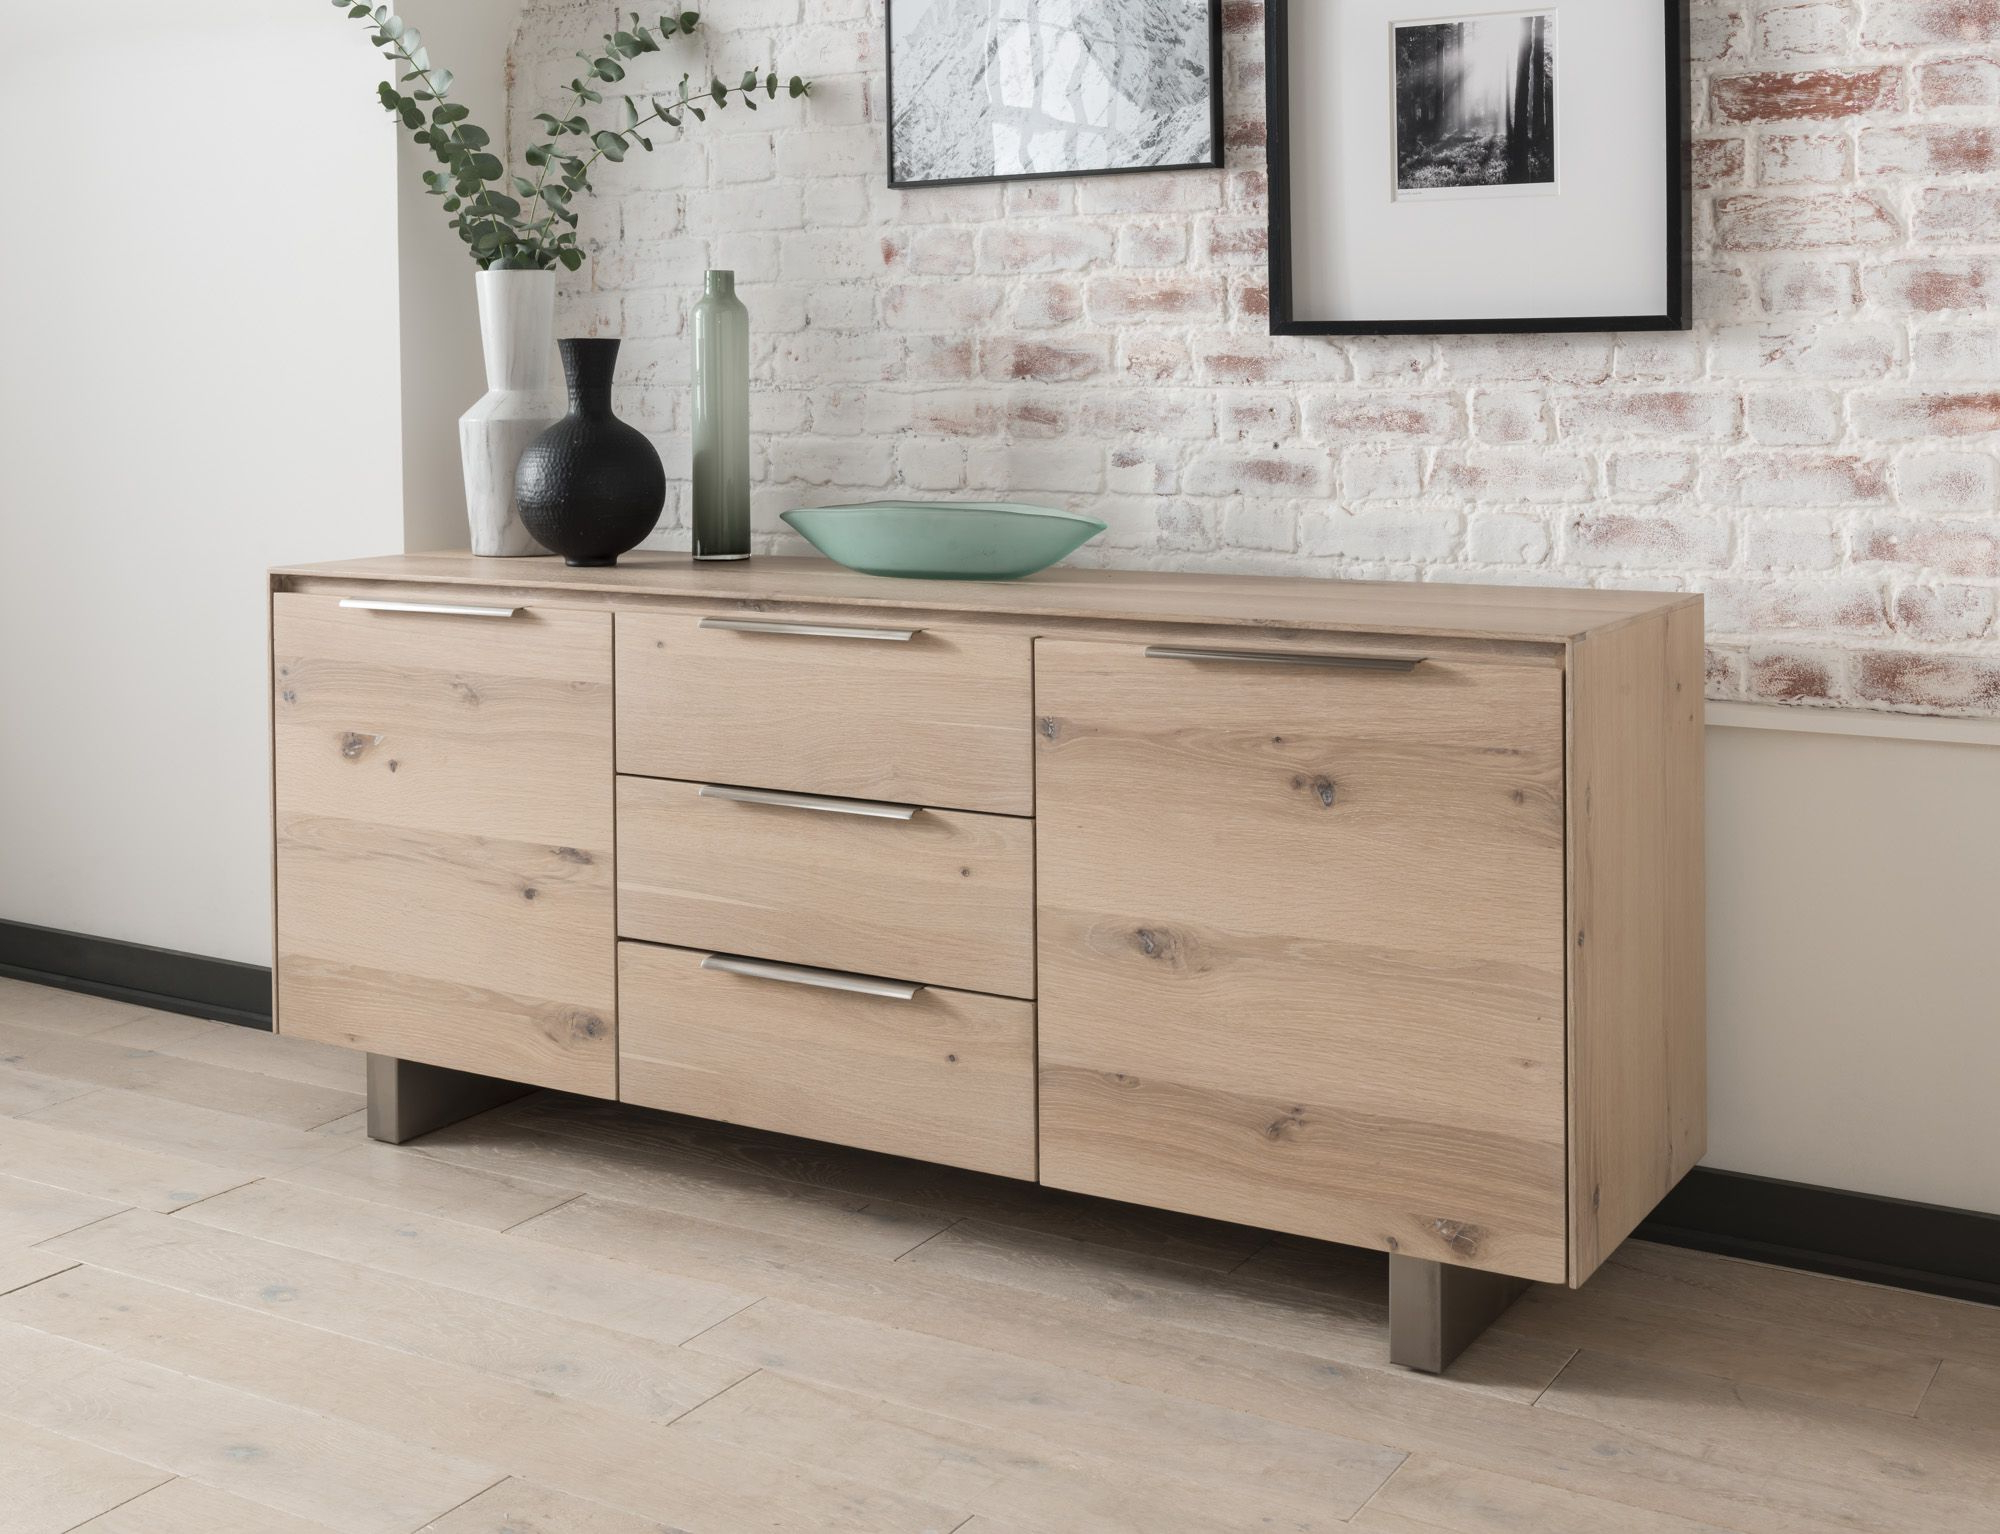 Capua White Washed Oak Sideboard 18vd175 Throughout Trendy 3 Drawer/2 Door White Wash Sideboards (View 12 of 20)